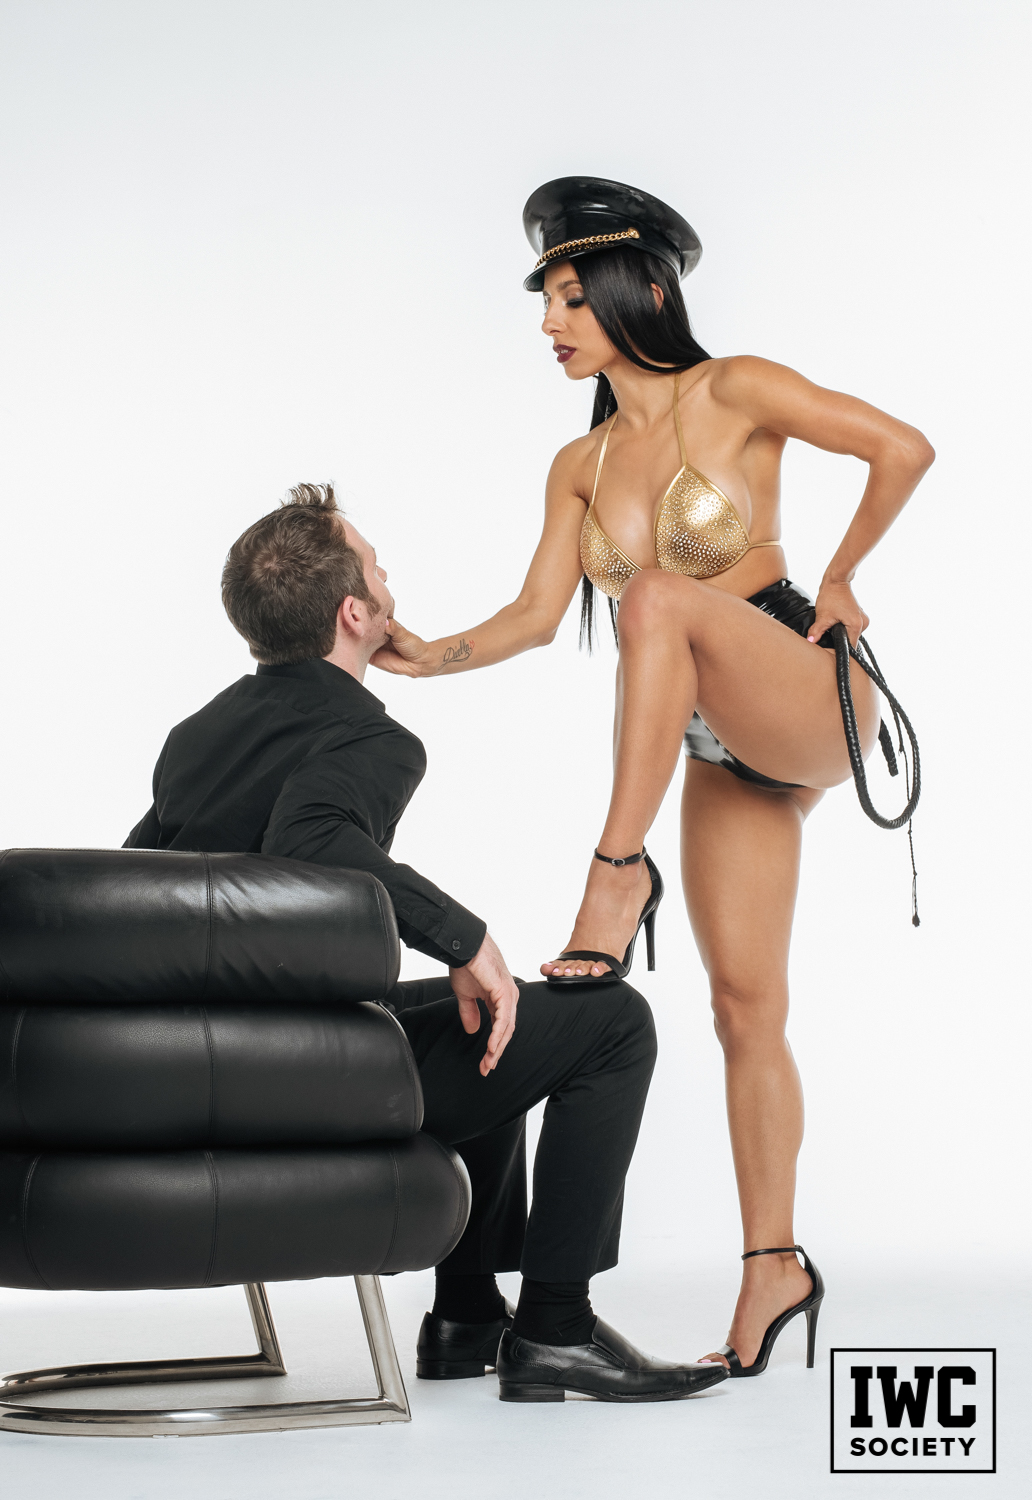 Brunette domme grabbing mans face with tattoo and heels